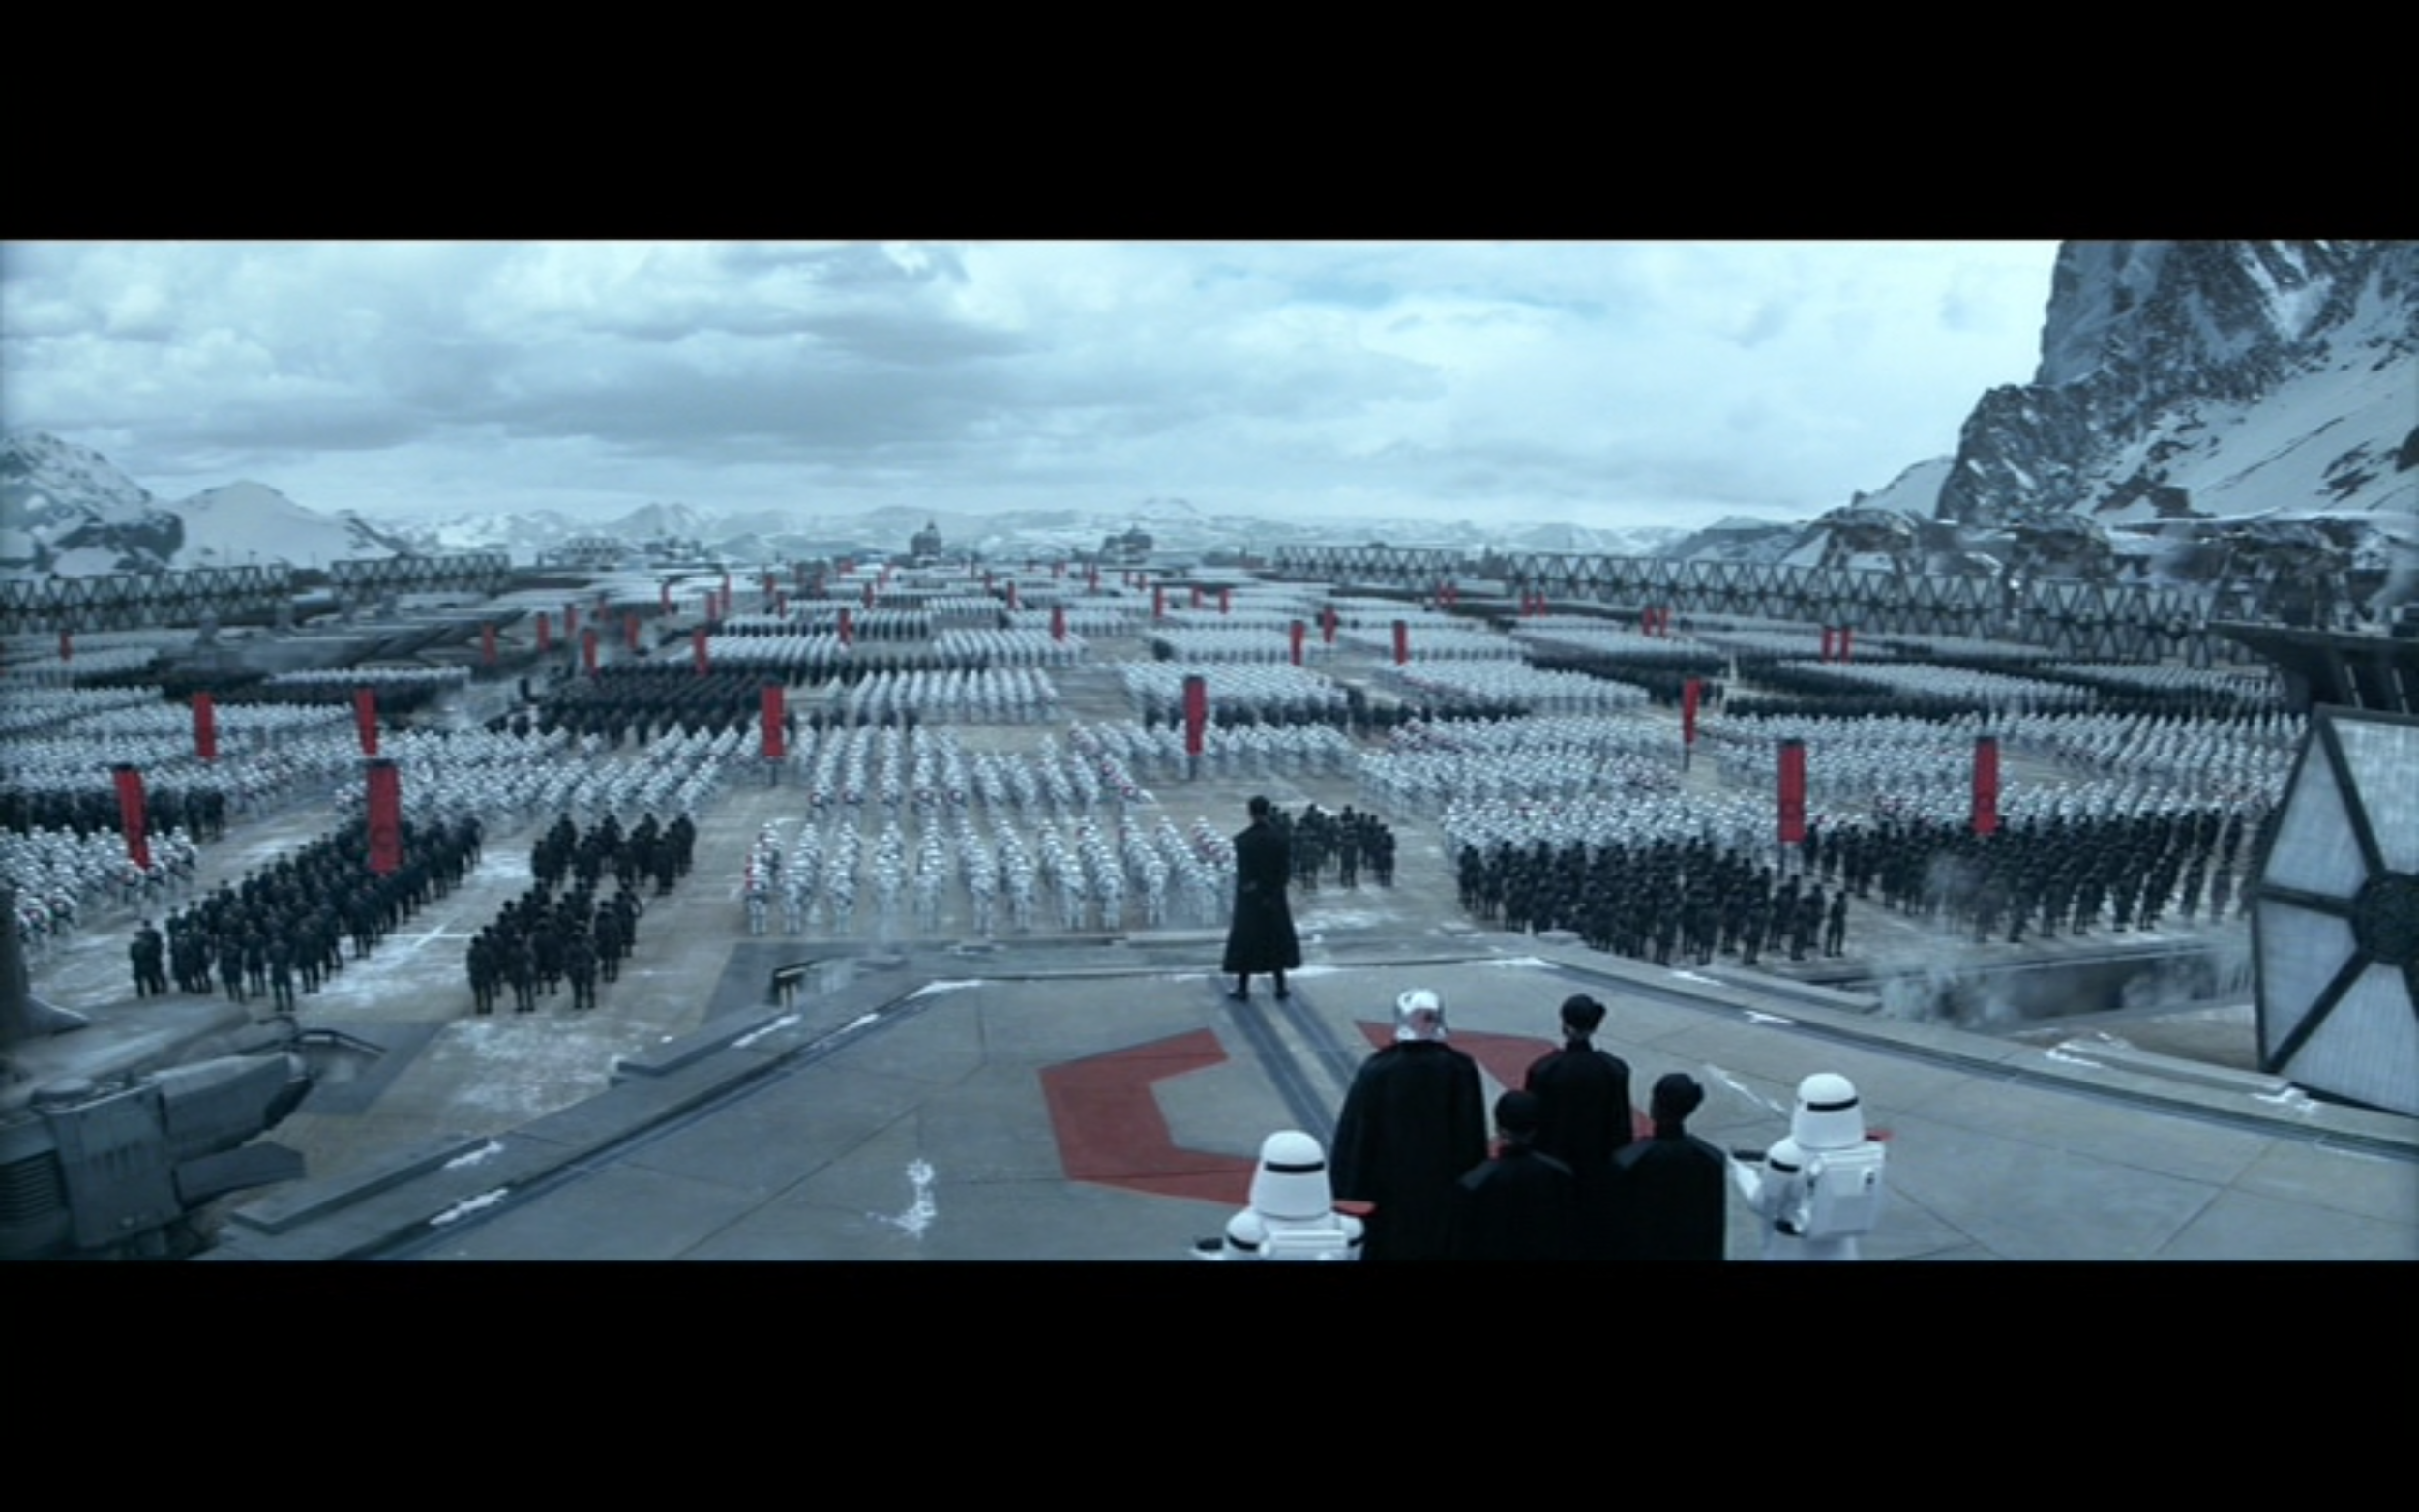 Figure 7: General Hux addresses First Order troops just before their super weapon destroys the planet that houses New Republi  c officers. Photo credit: Twentieth Century Fox (DVD).